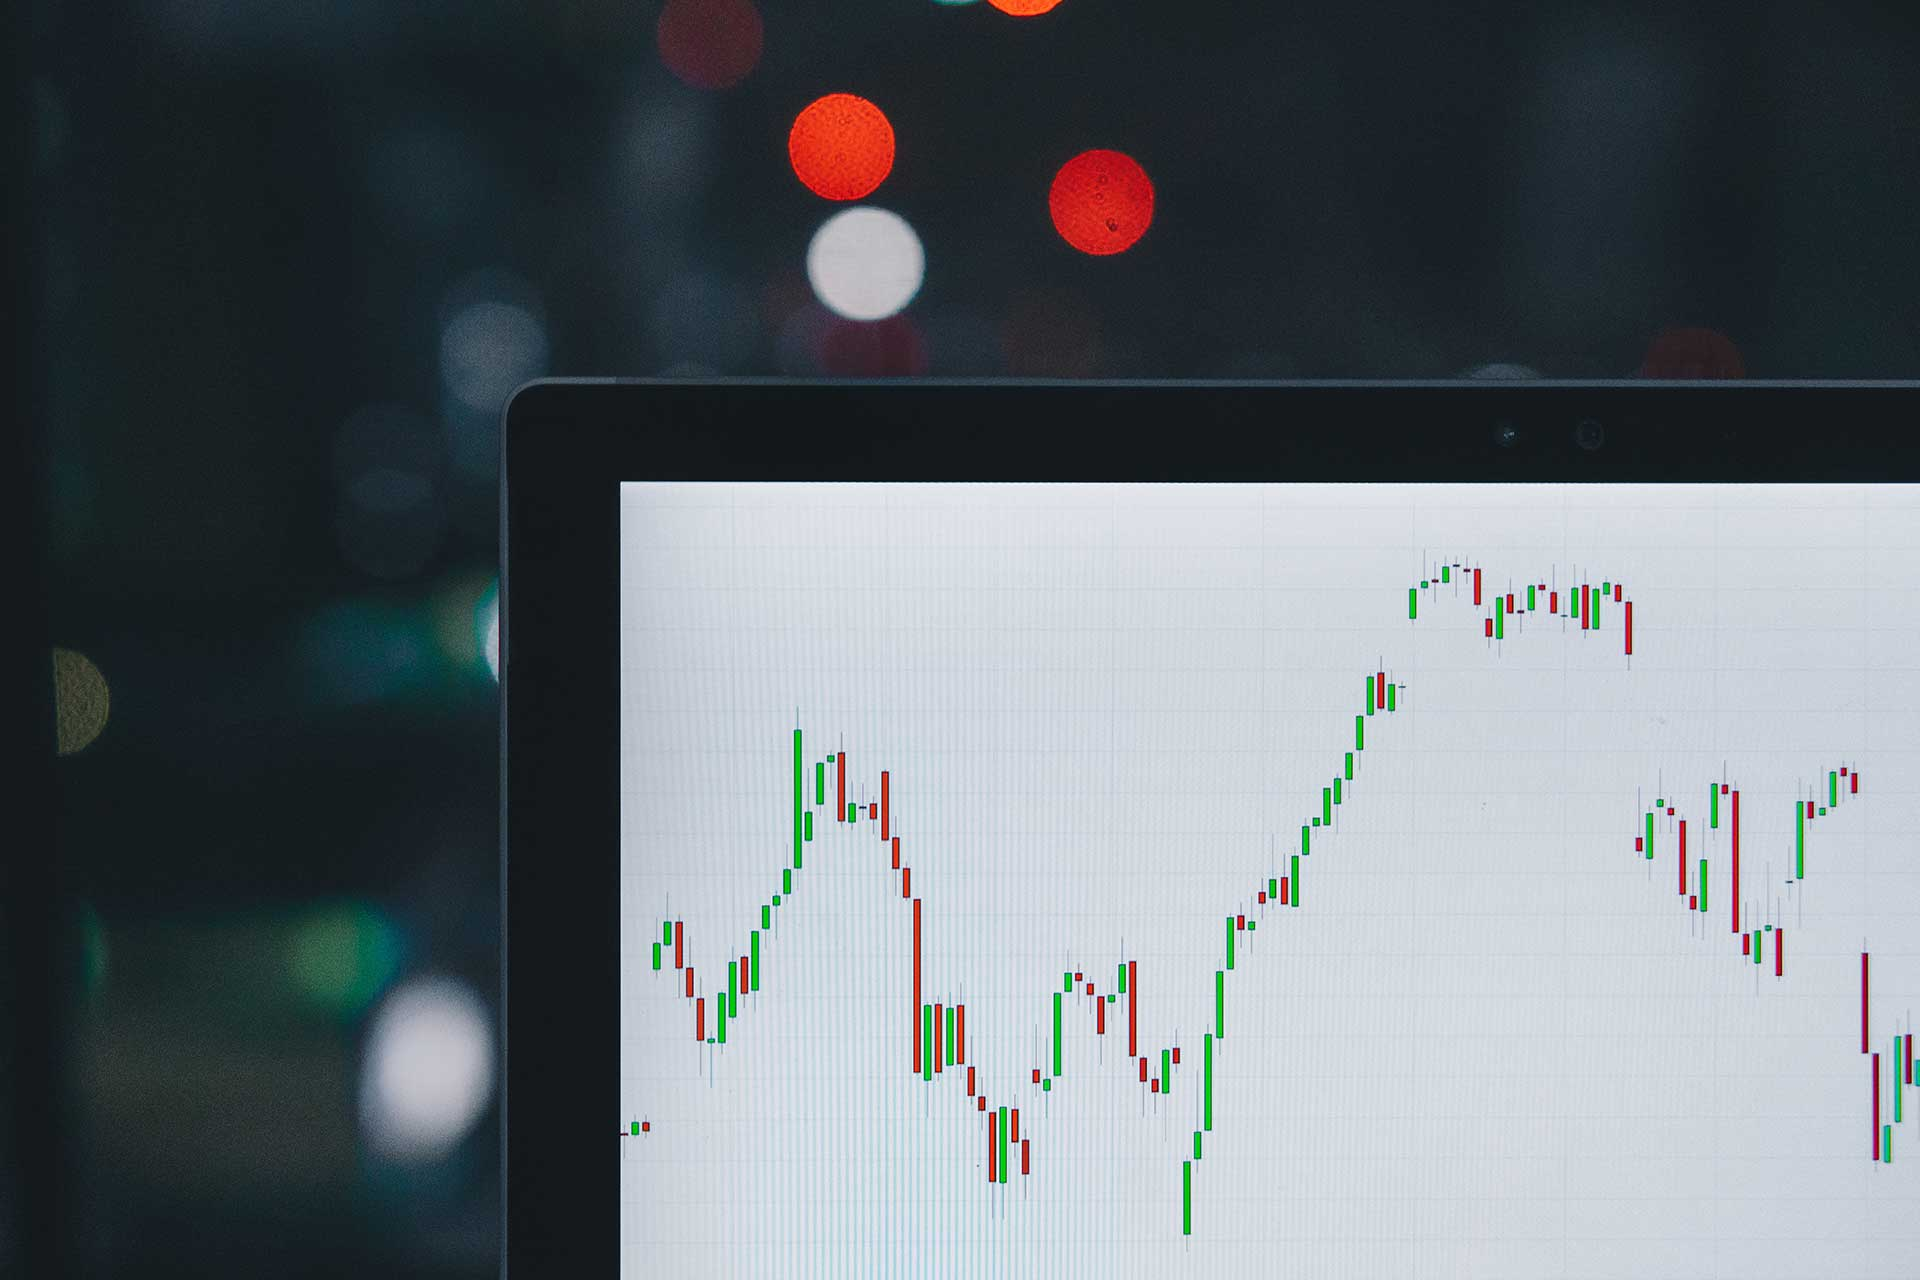 Blog: Trend Following - Herges Capital Management